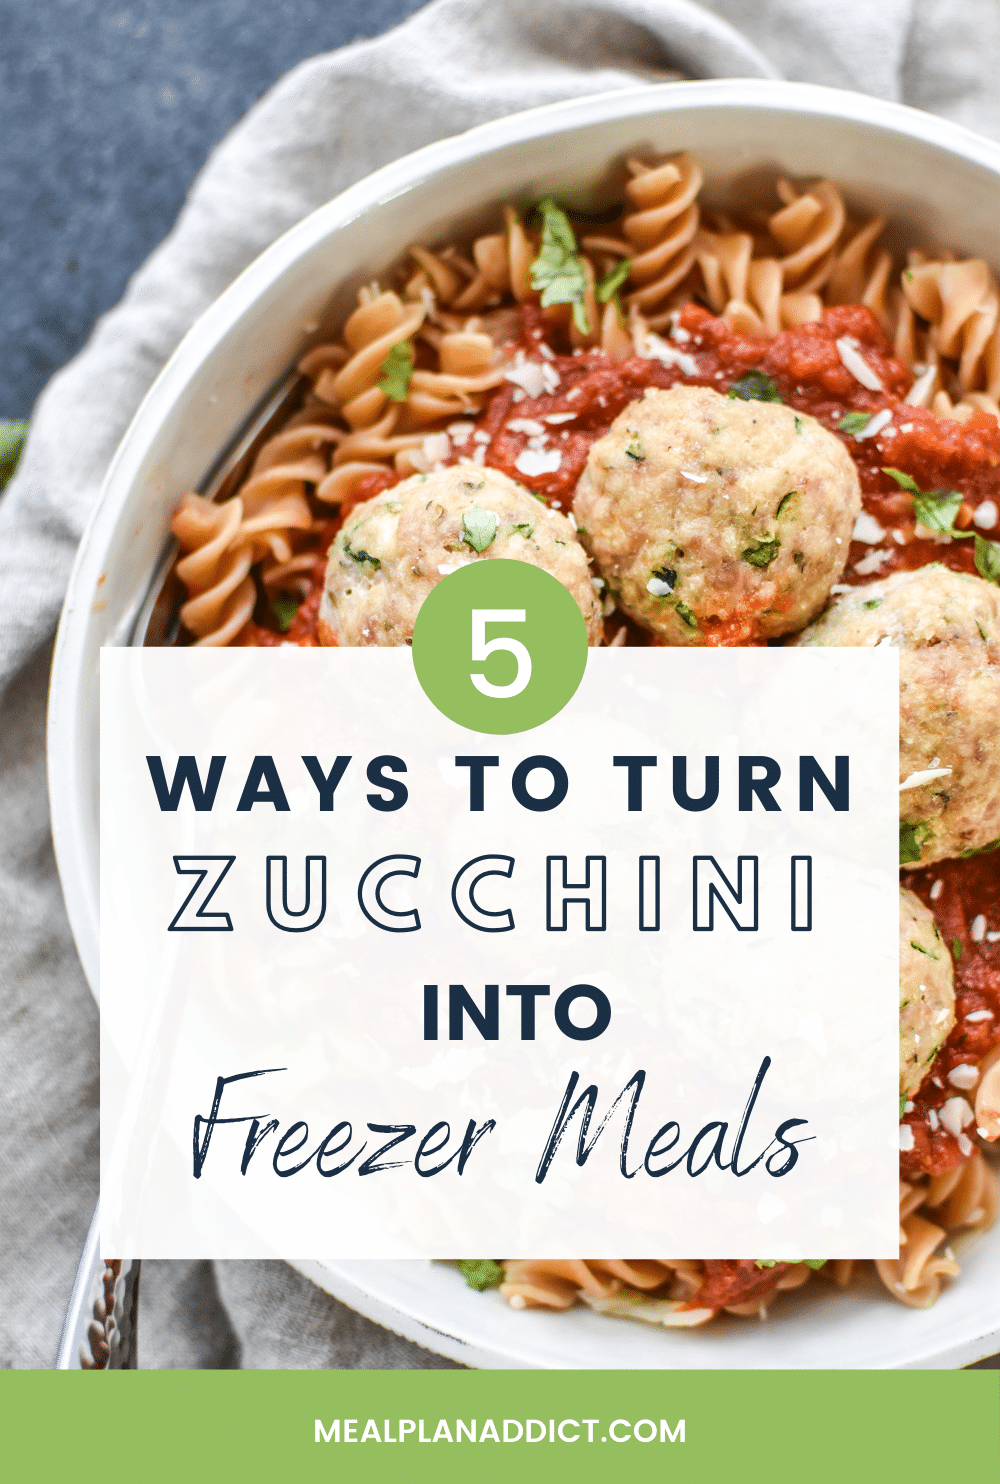 5 Easy Ways to Turn Summer Zucchini into Freezer Meals | Meal Plan Addict